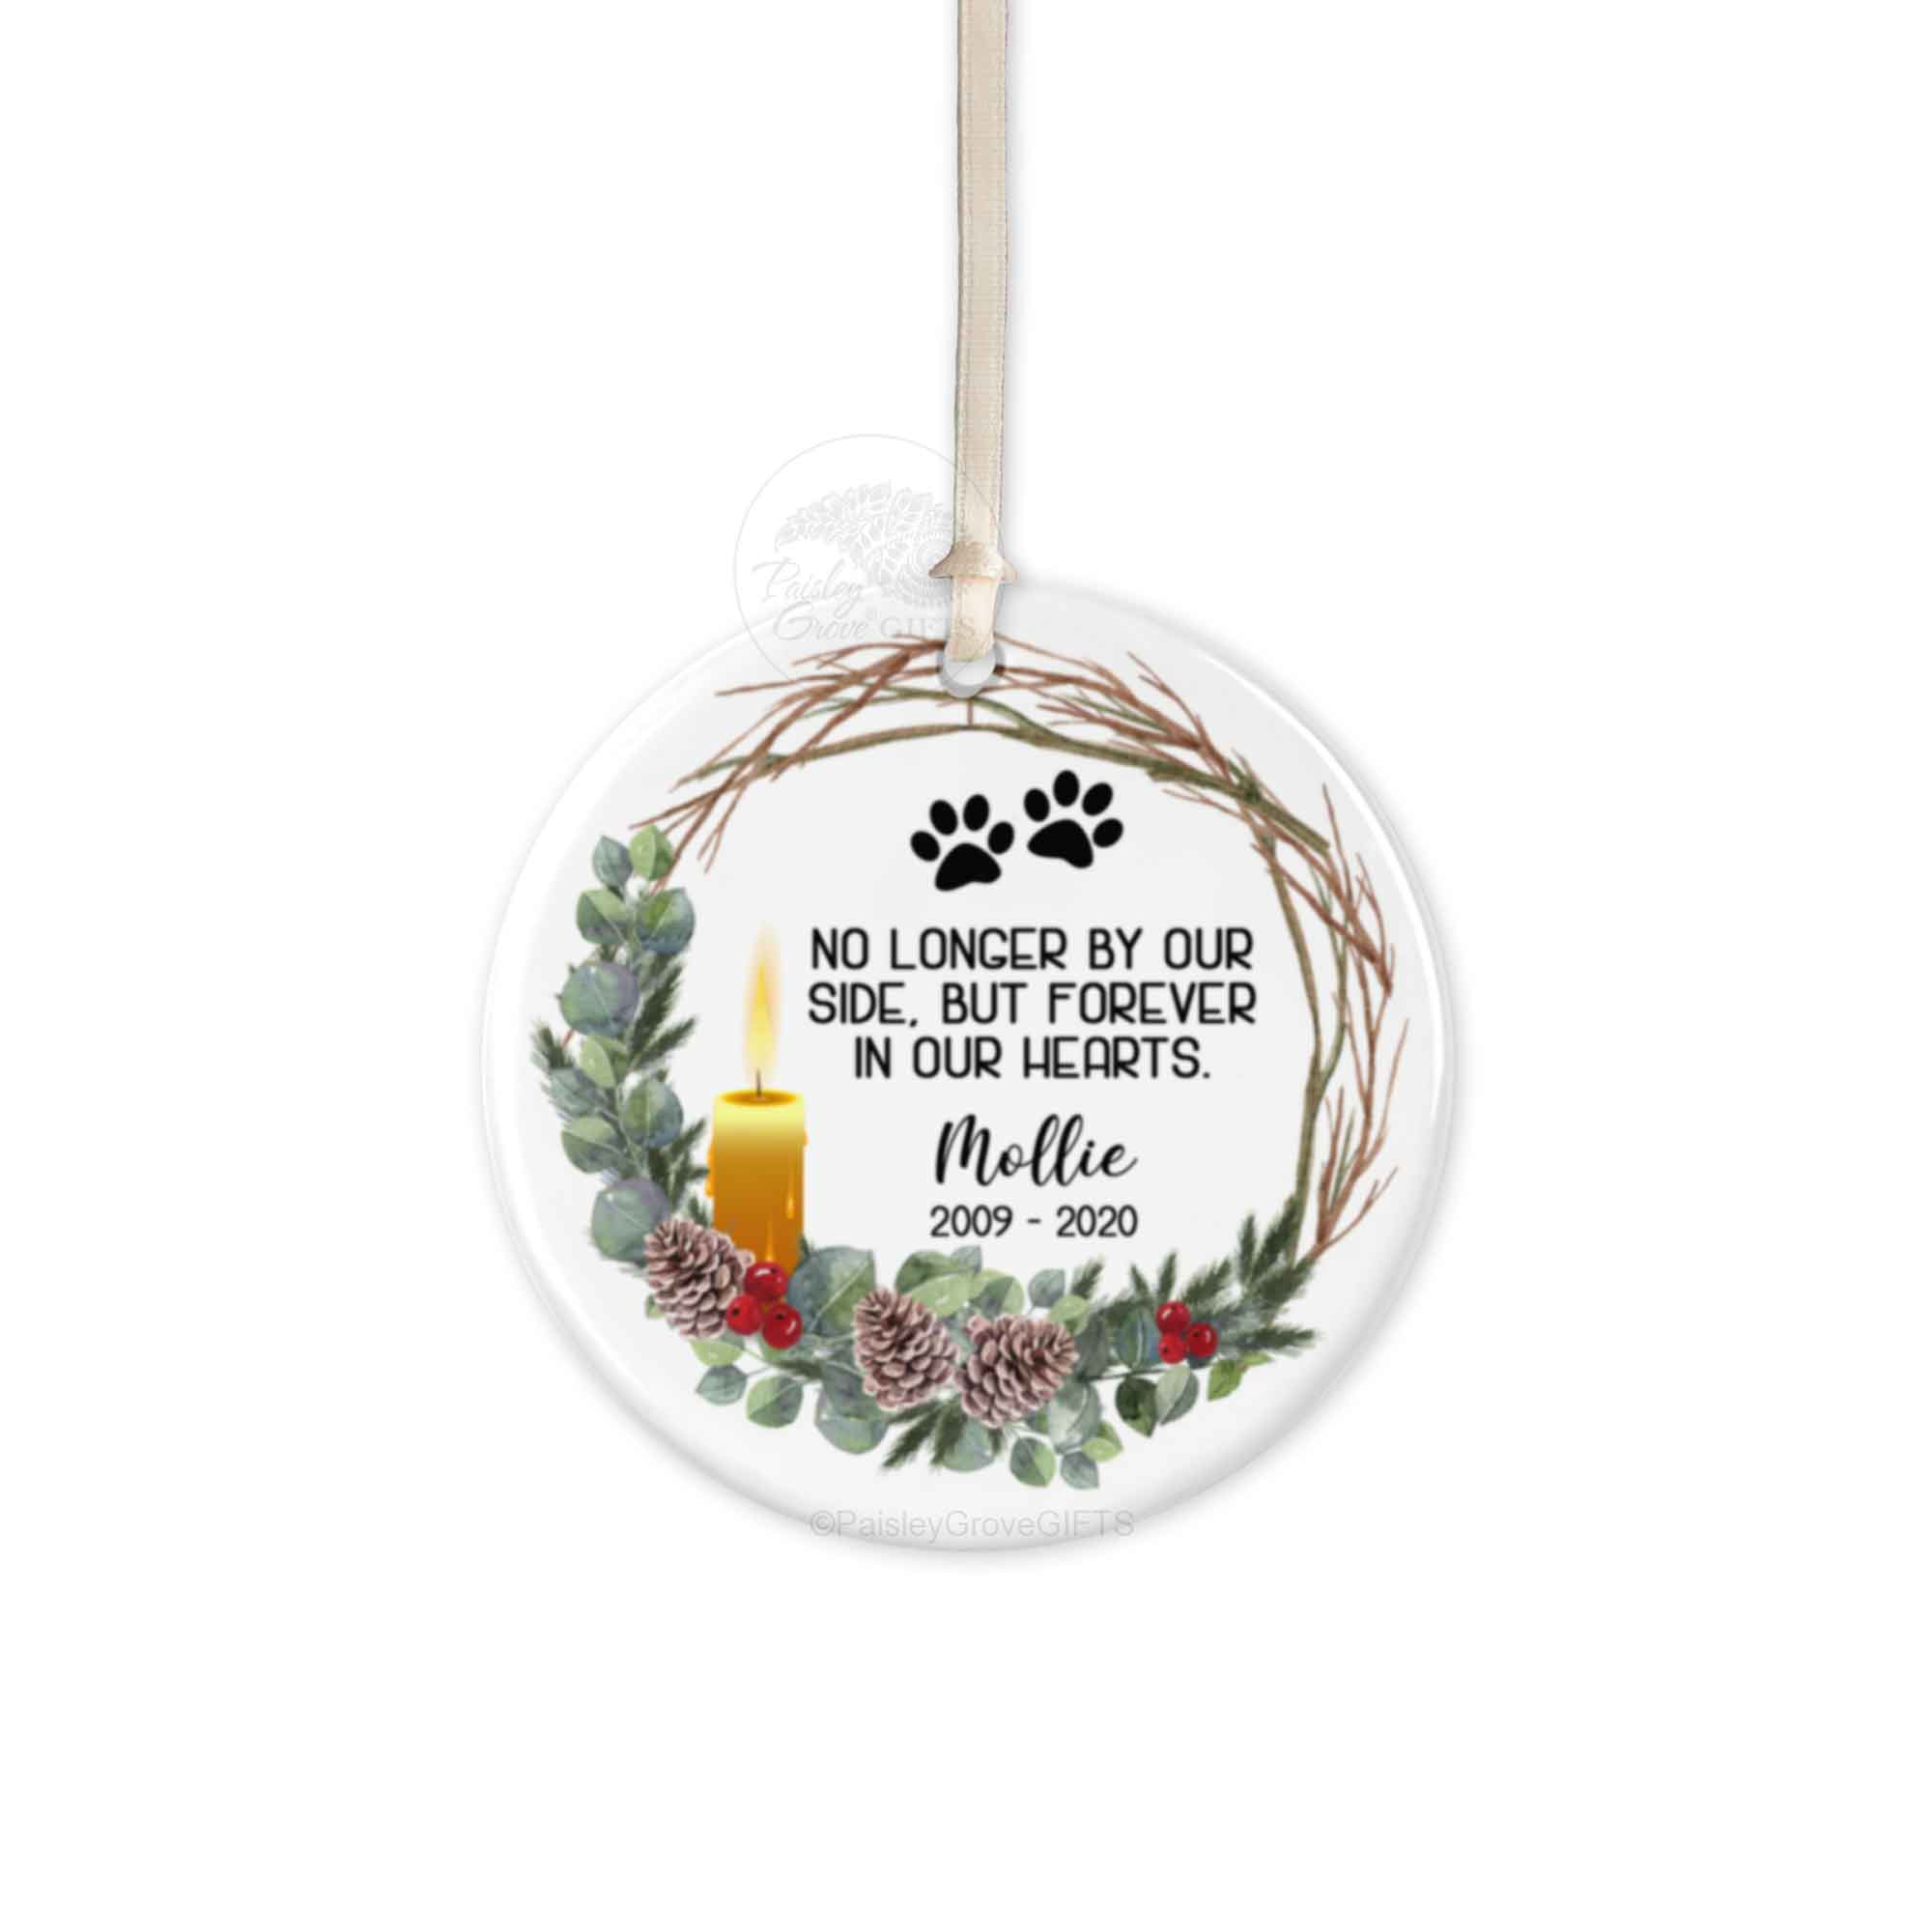 Copyright PaisleyGroveGIFTS S522e Pet Memorial Personalized Christmas Ornament Ceramic with candle and wreath design